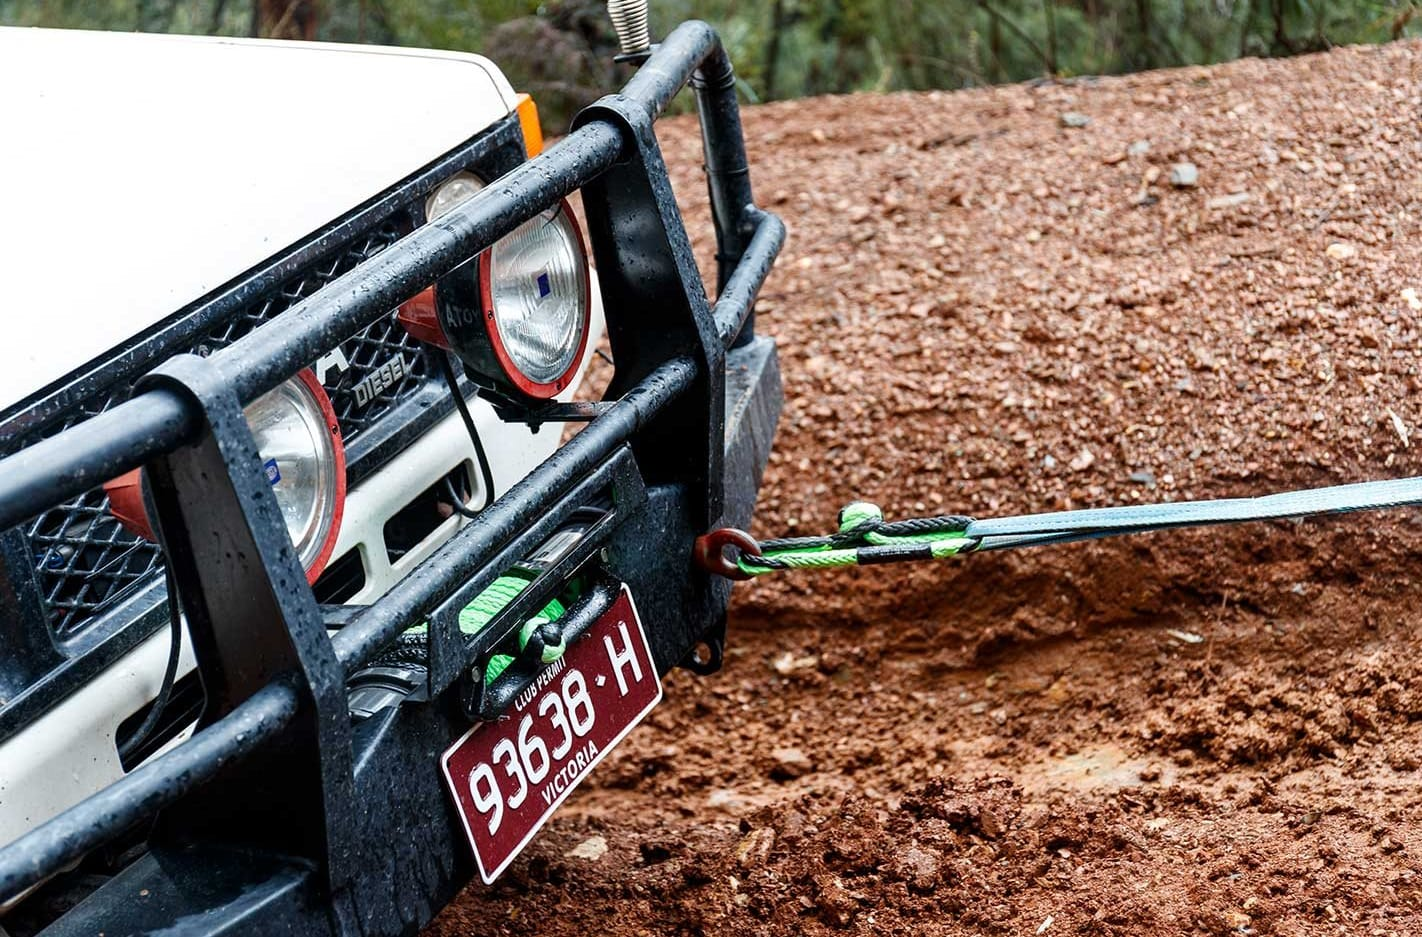 Bubba Rope Pro Line winch rope product test